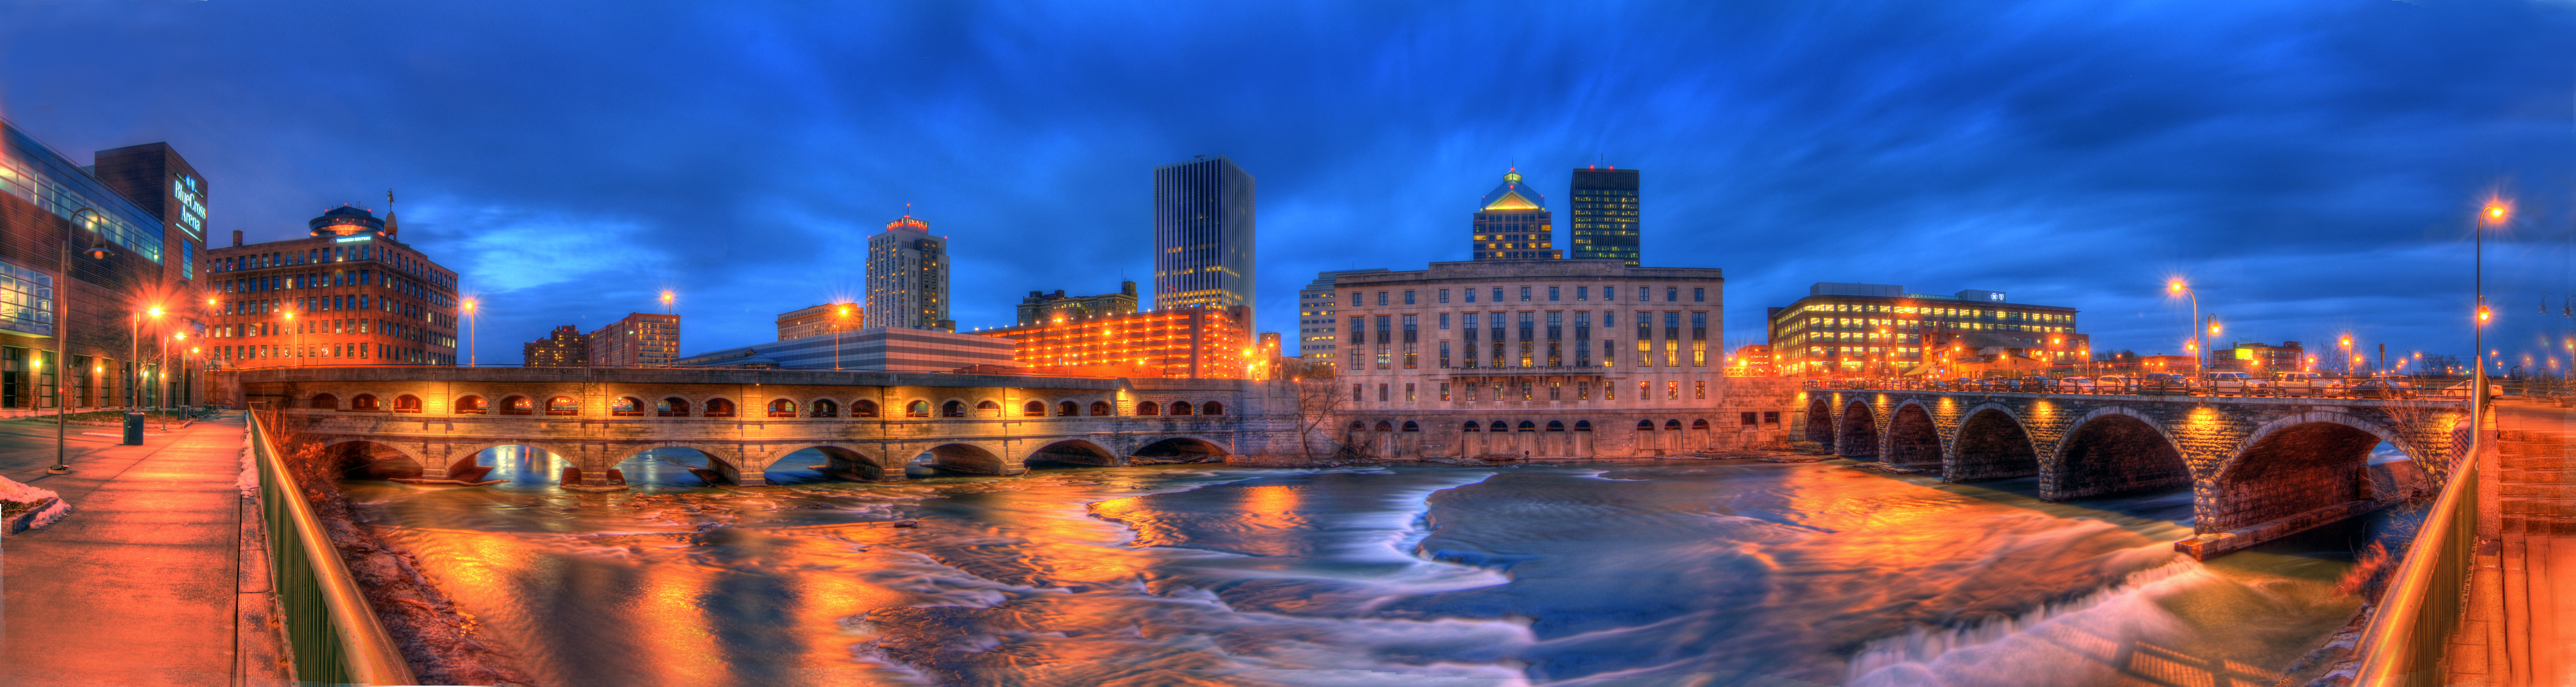 Things to see in rochester ny